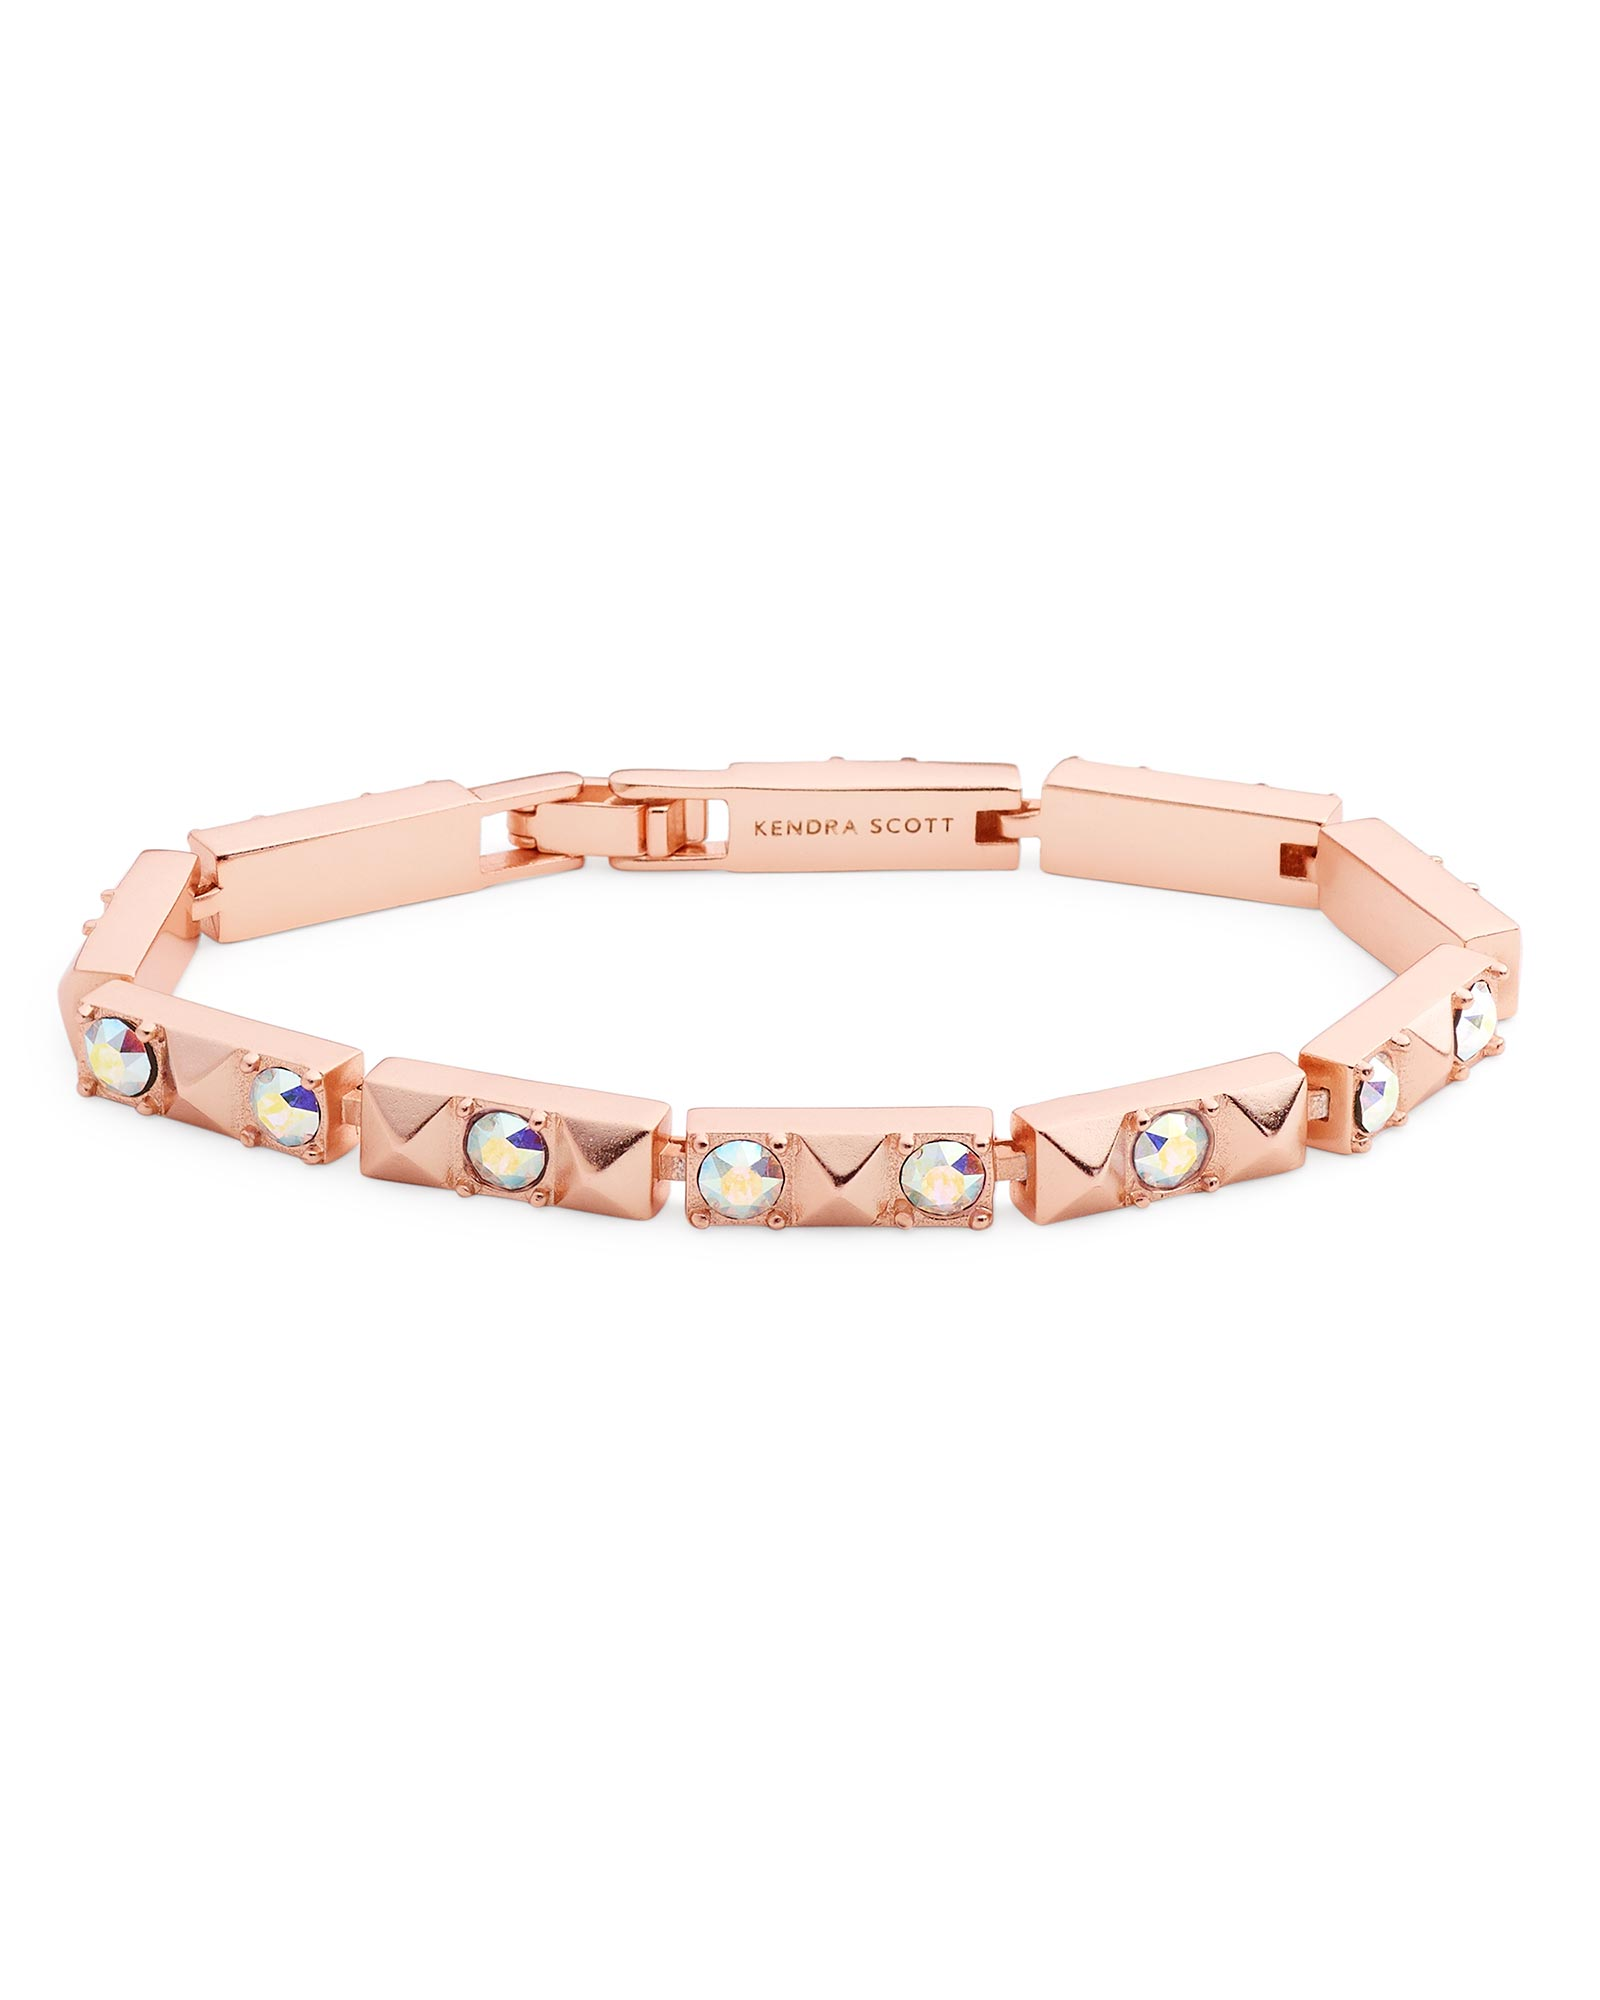 Phillipe Link Bracelet in Rose Gold